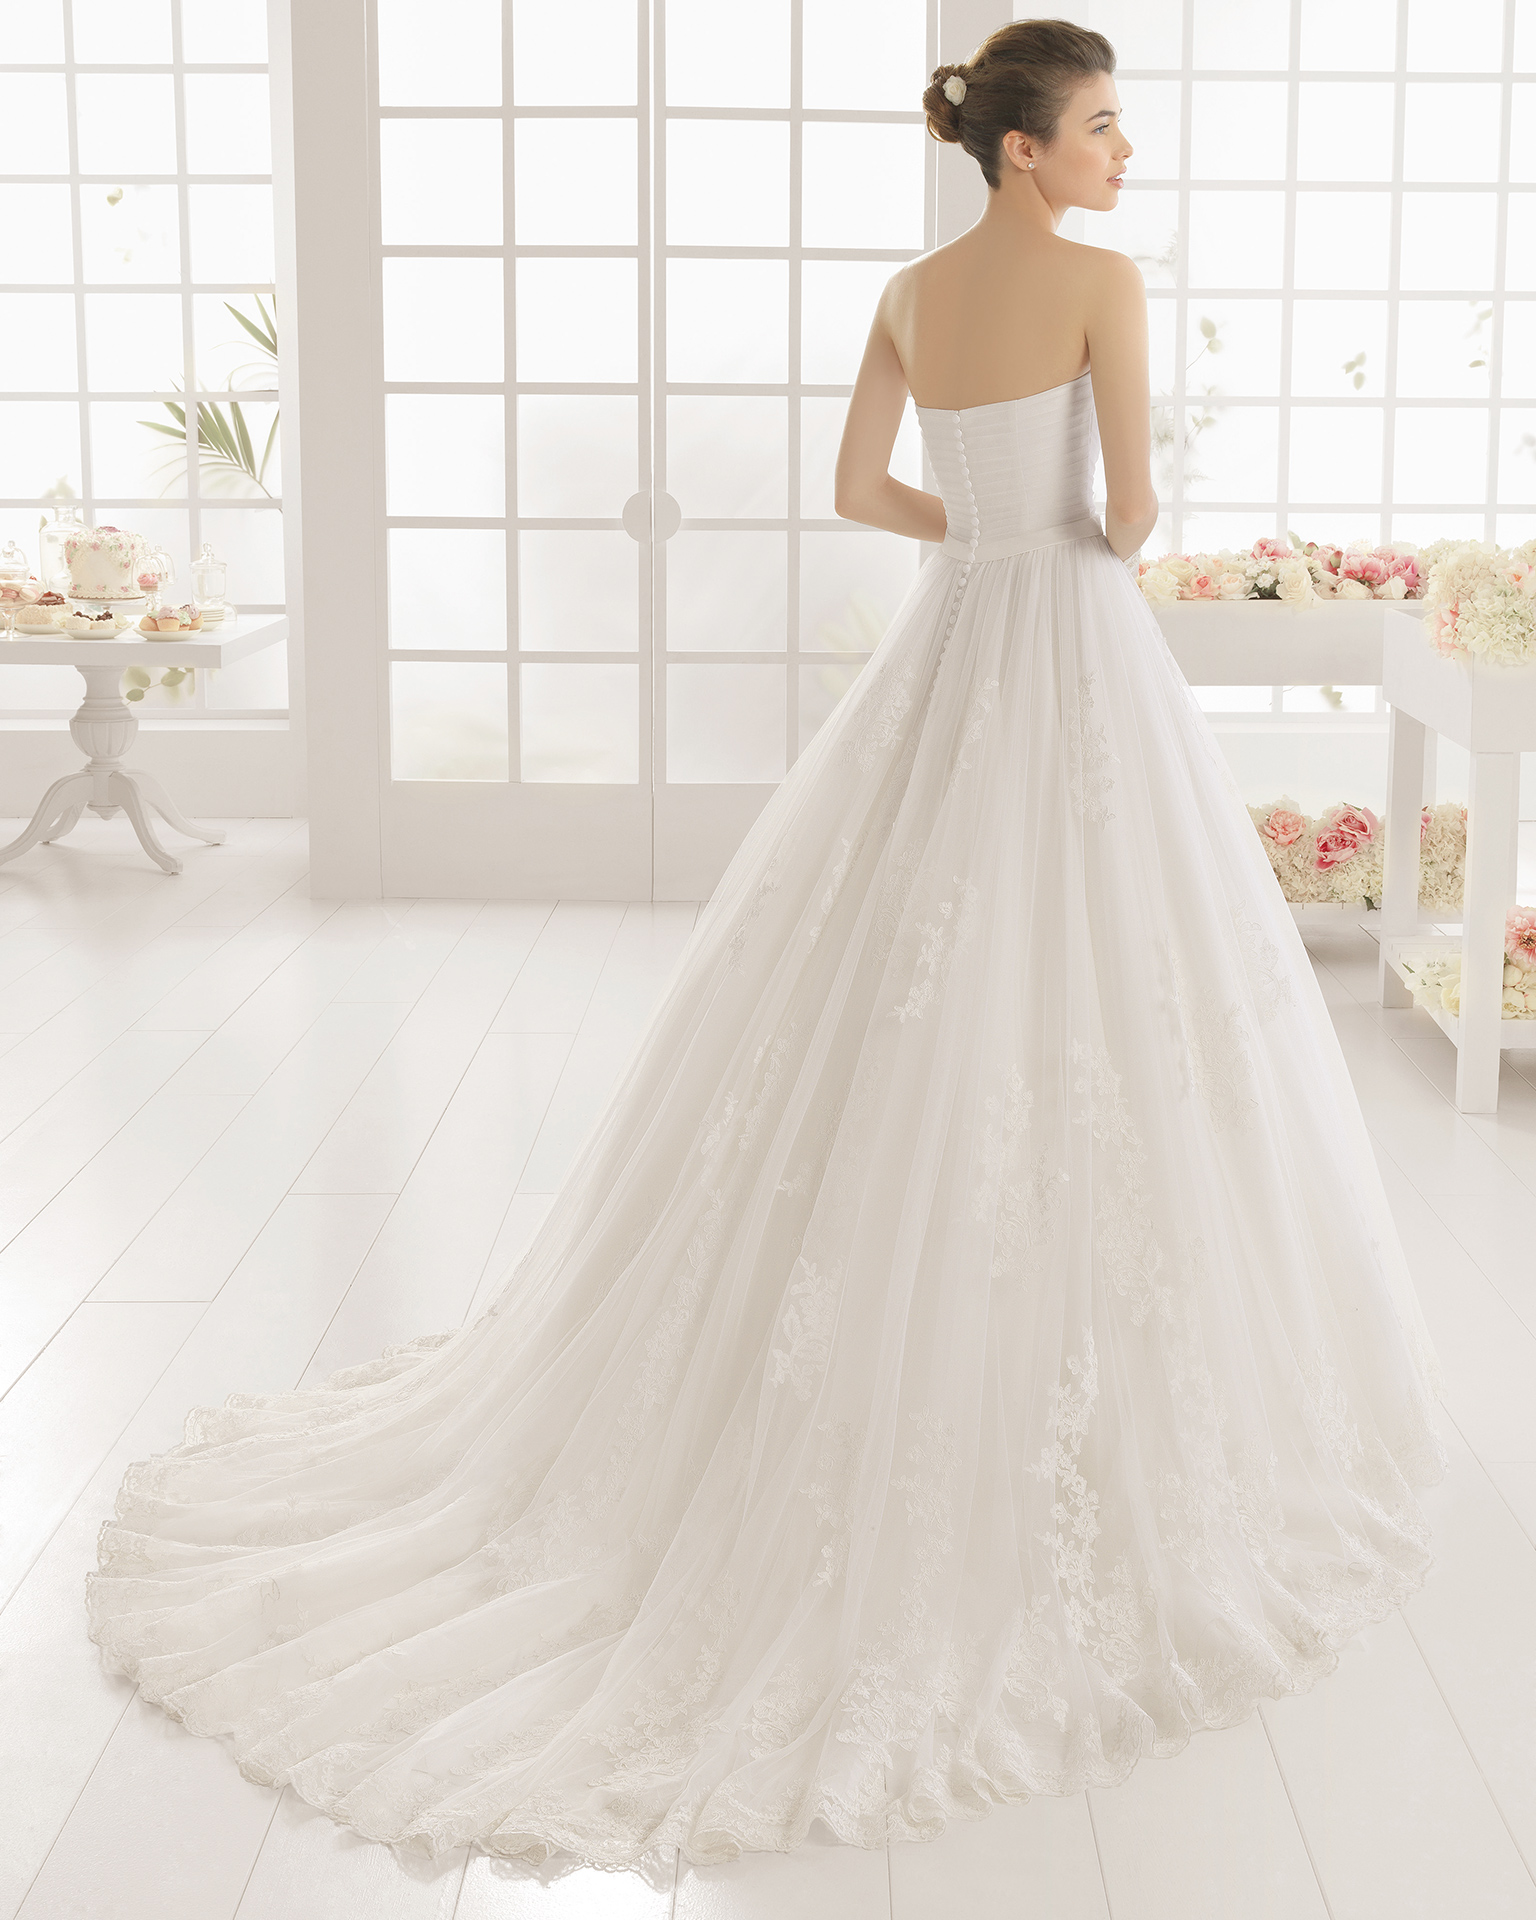 MIRLO beaded lace and tulle wedding dress.